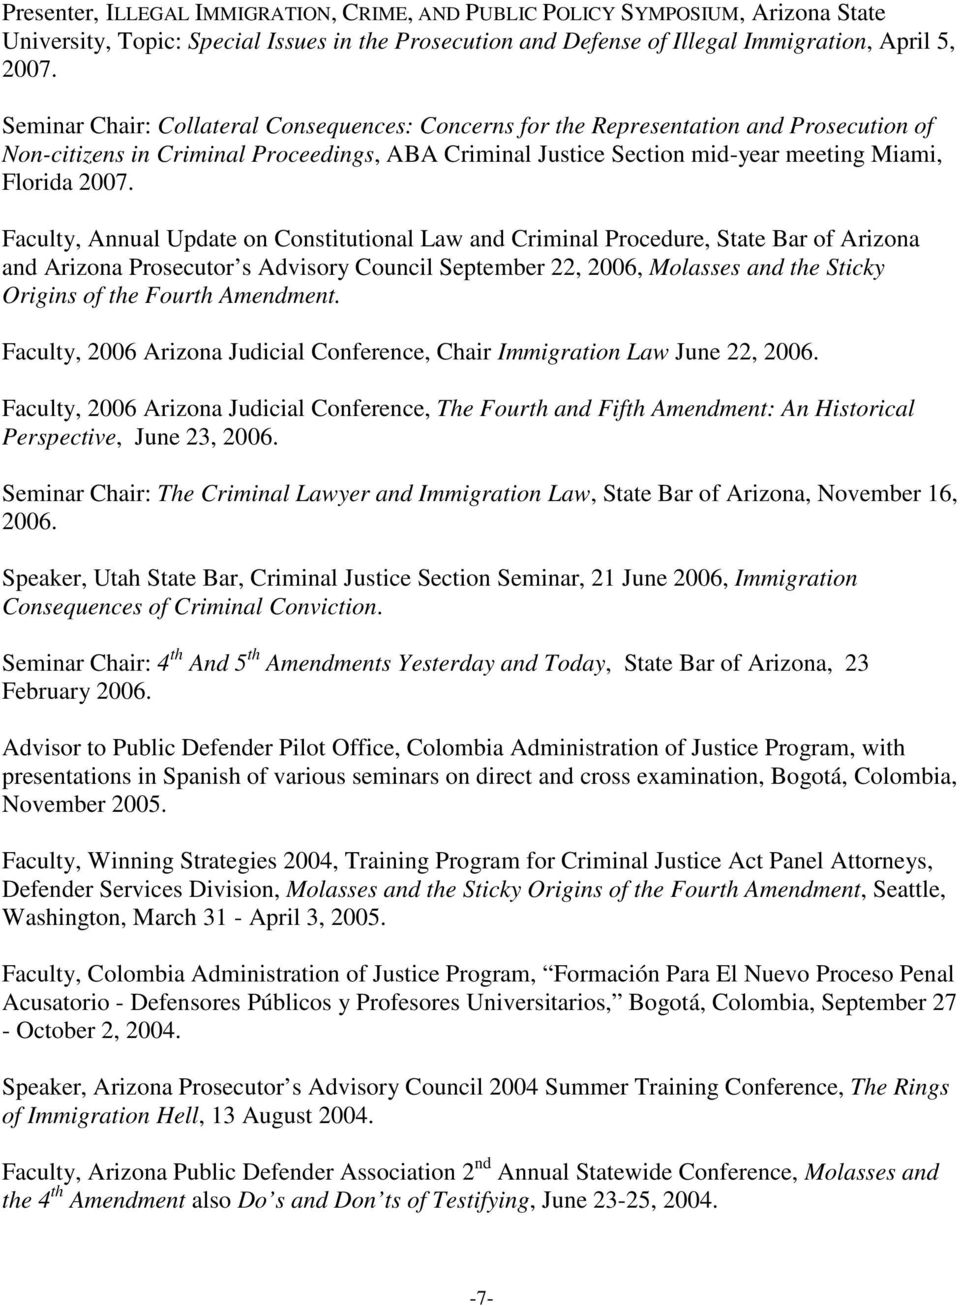 Faculty, Annual Update on Constitutional Law and Criminal Procedure, State Bar of Arizona and Arizona Prosecutor s Advisory Council September 22, 2006, Molasses and the Sticky Origins of the Fourth